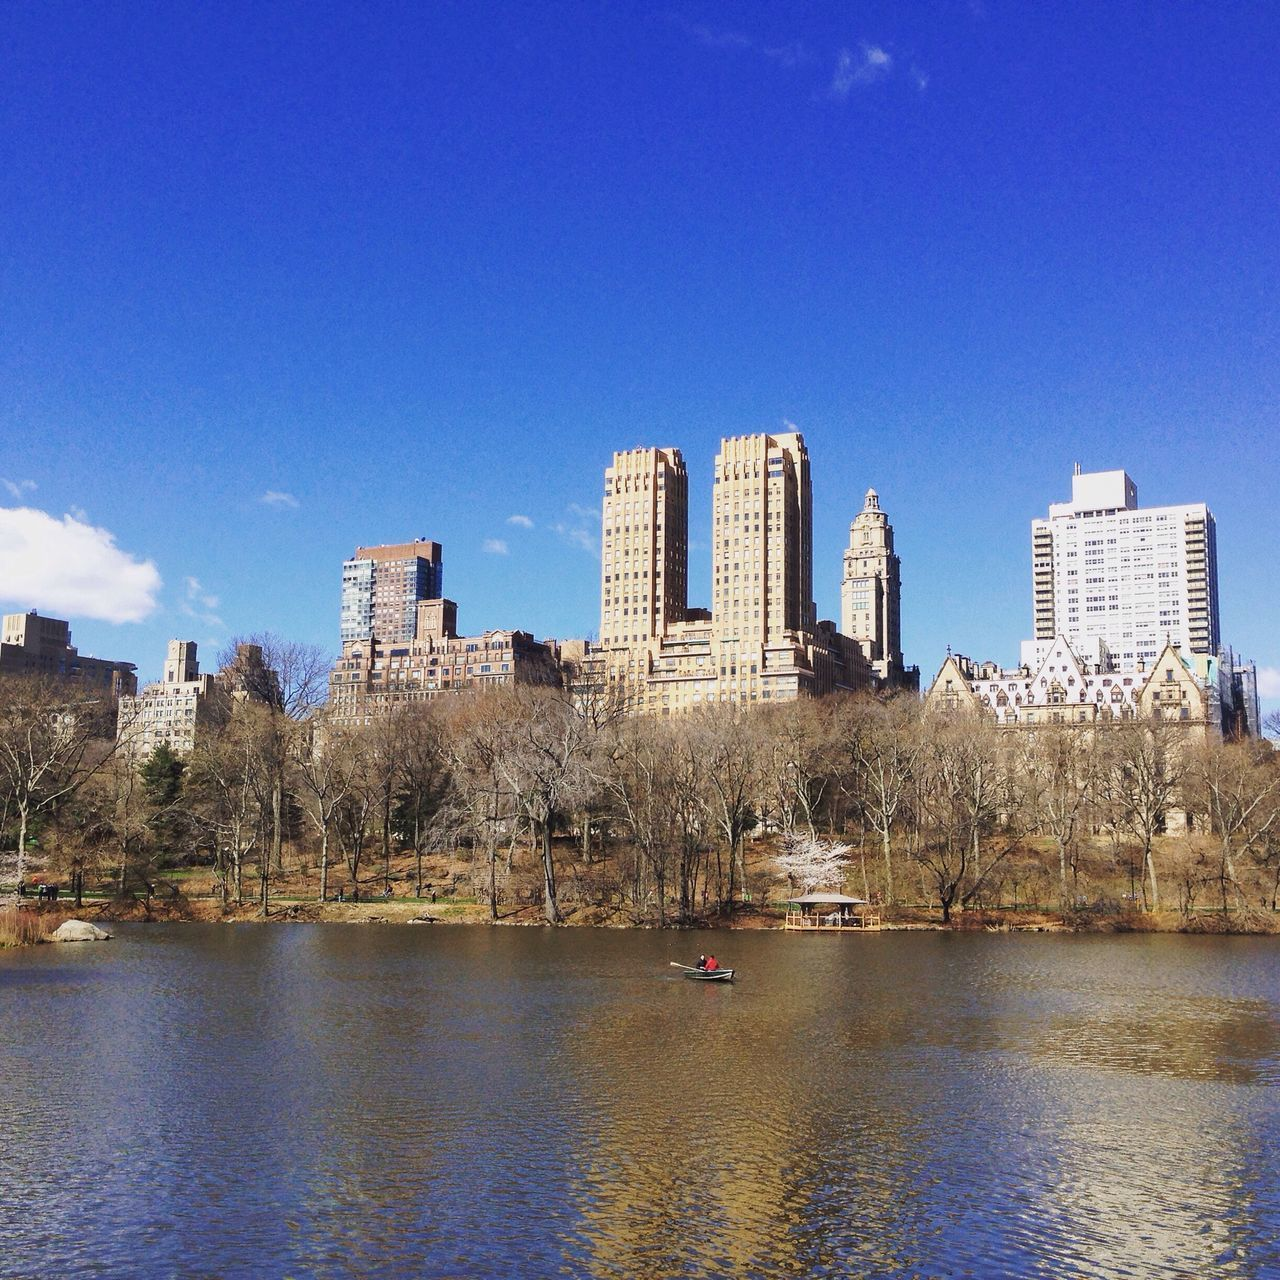 architecture, building exterior, built structure, city, skyscraper, blue, cityscape, water, waterfront, tower, urban skyline, day, skyline, city life, outdoors, modern, river, travel destinations, no people, sky, clear sky, tall, growth, nature